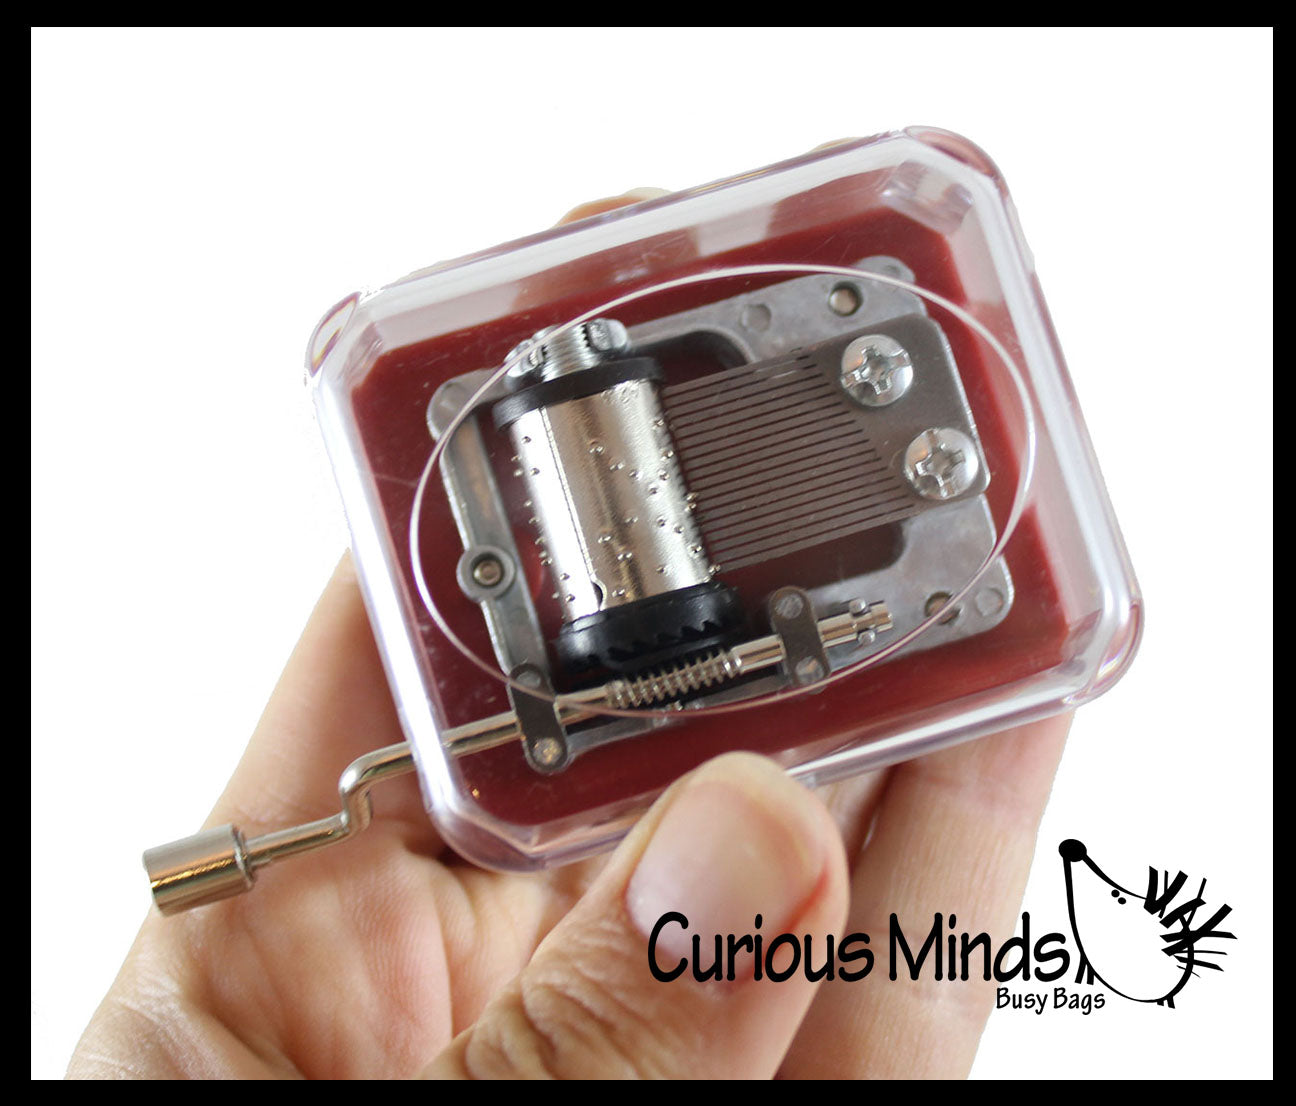 Mini Music Box - Wind Up Classic Toy - Mechanical Musical Toy - Fidget Stress Toy